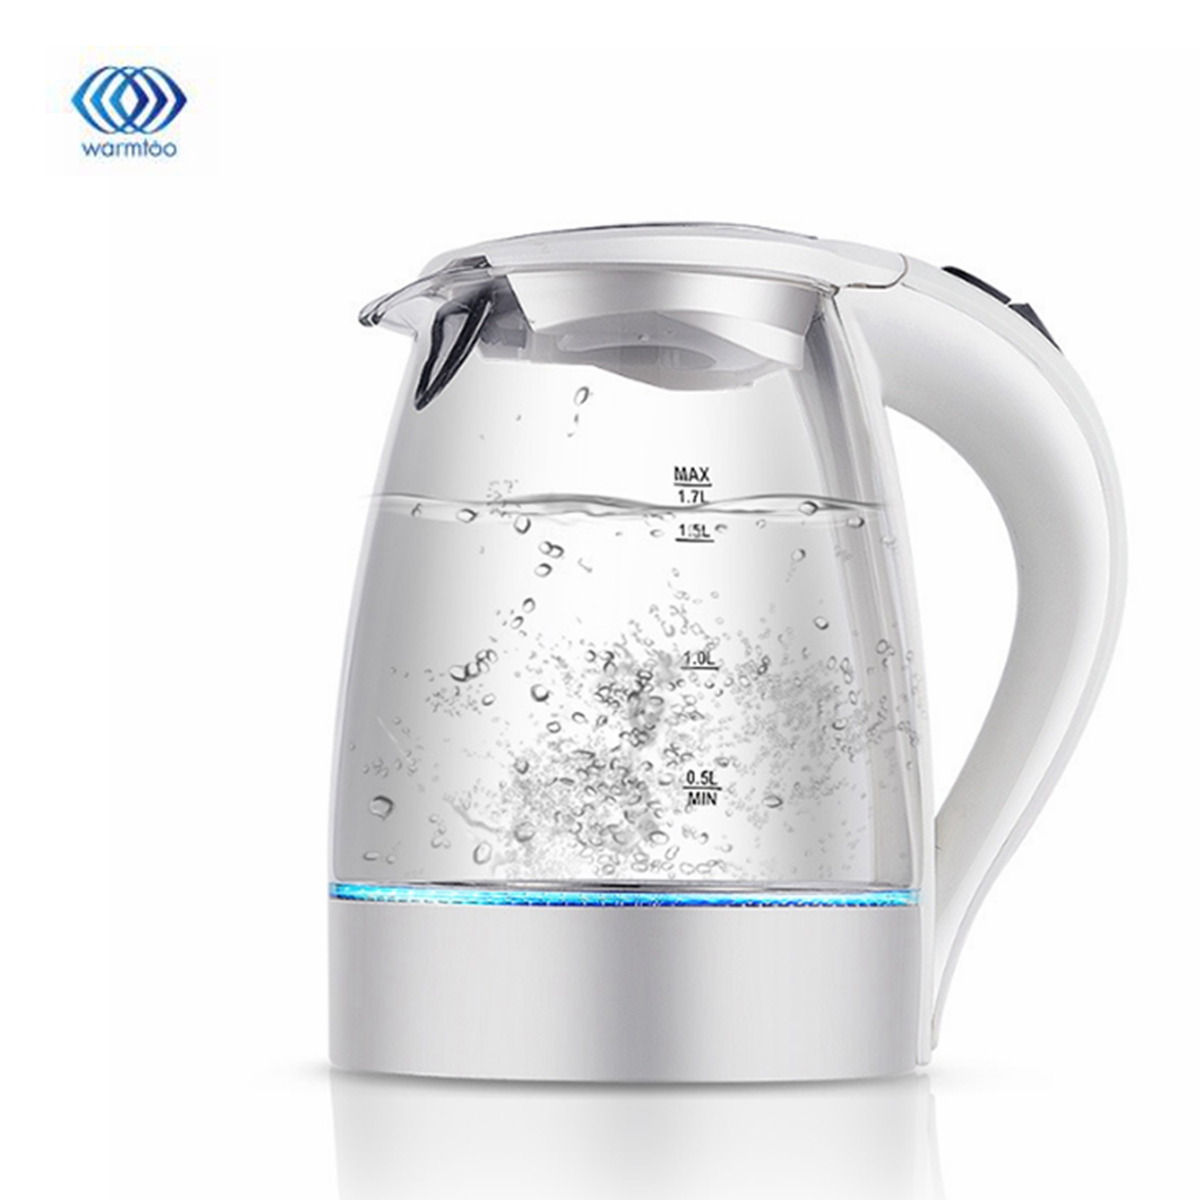 1.7L 2200W LED Illuminated Glass Kettle Electric Rapid Boil Cordless Electric Kettle Electric Kettle Teapot Smart Kettle Kitchen